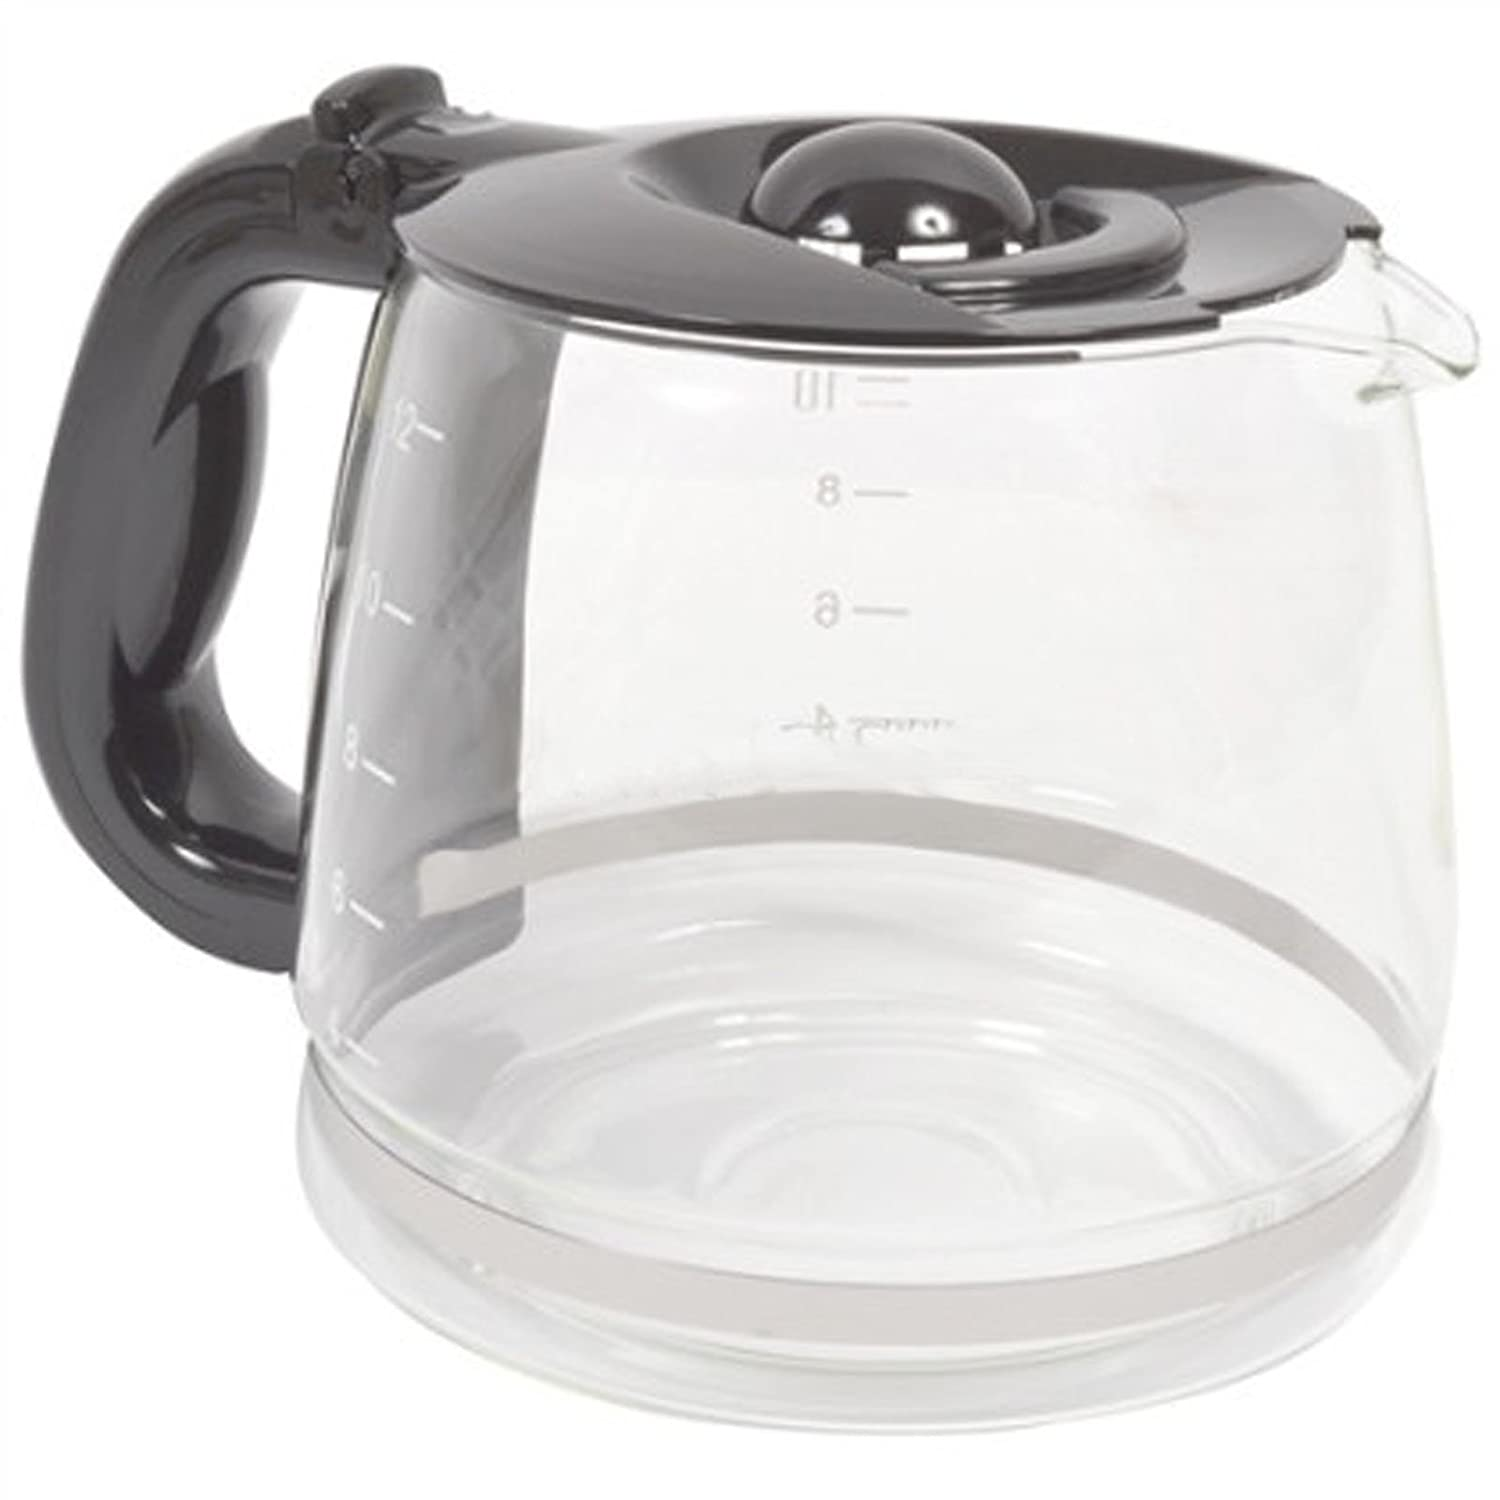 SPARES2GO Glass Jug Carafe for Russell Hobbs 12693-56 Futura Memo Coffee Machine